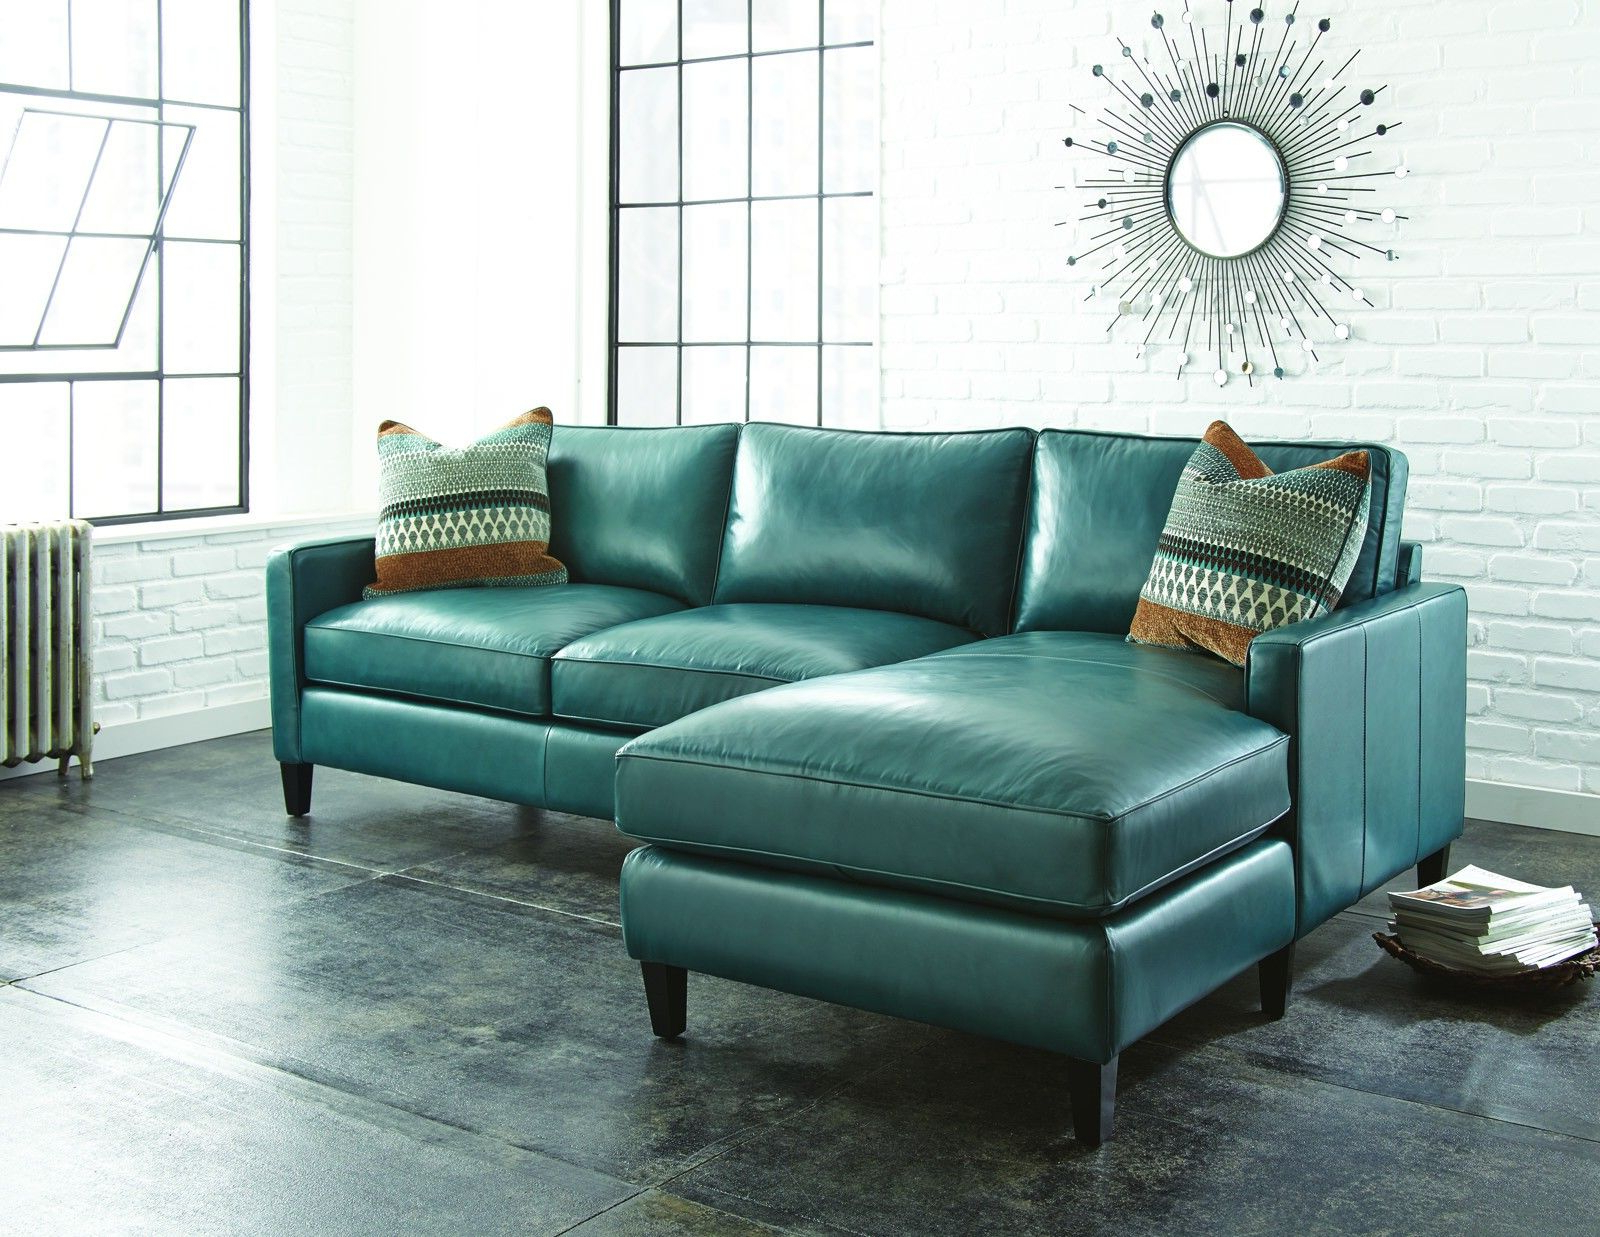 Gina Blue Leather Sofa Chairs In Best And Newest How To Reupholster Leather Furniture In 5 Easy Steps (Gallery 11 of 20)